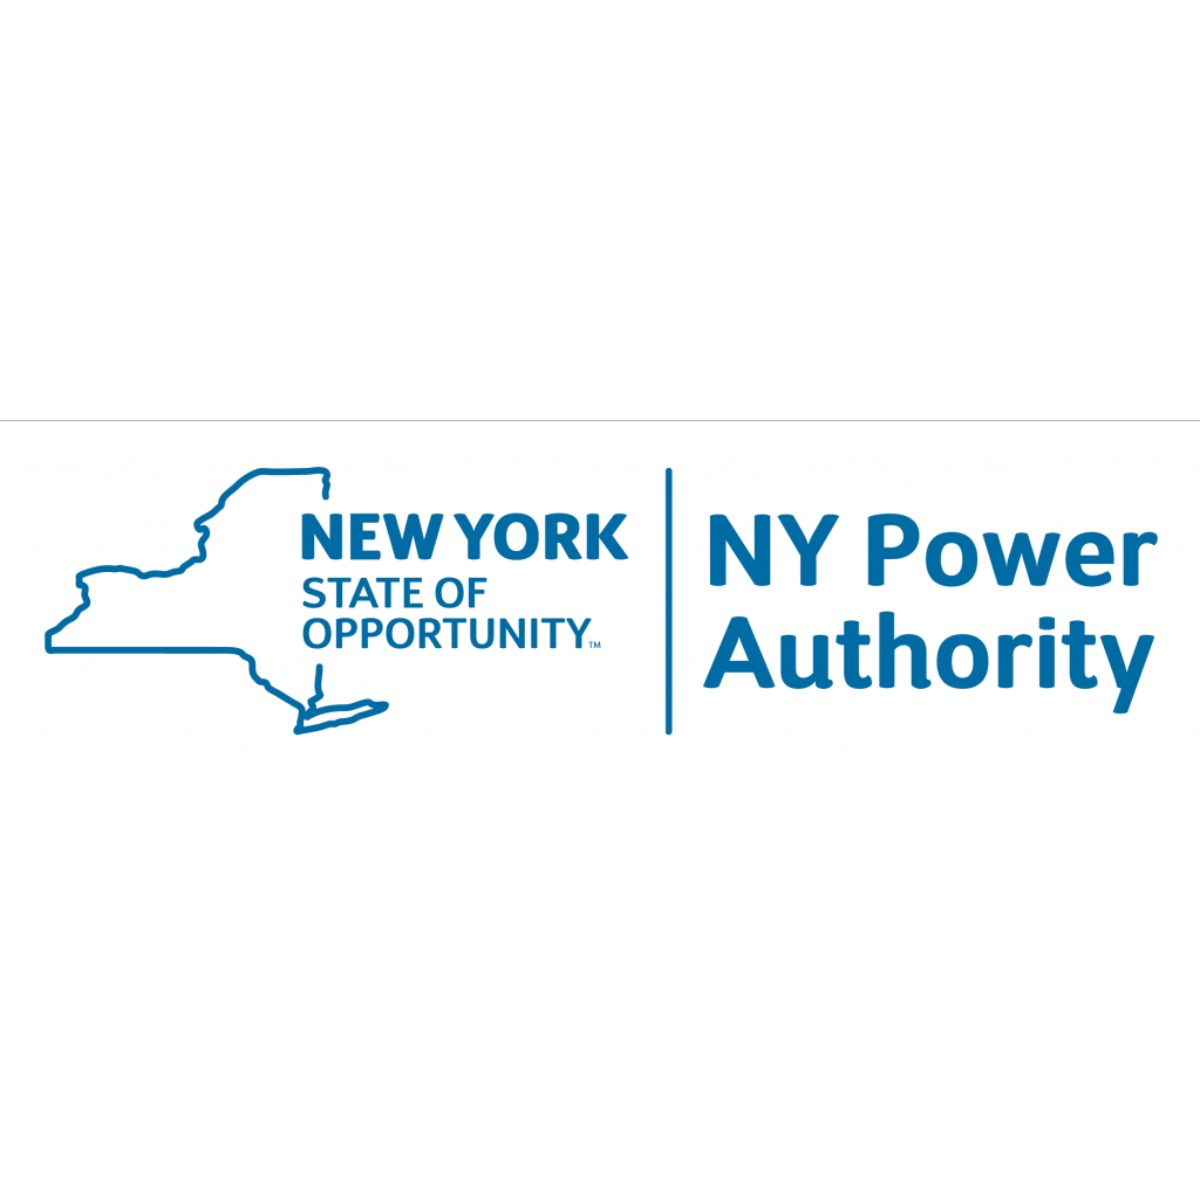 ny_power_authority